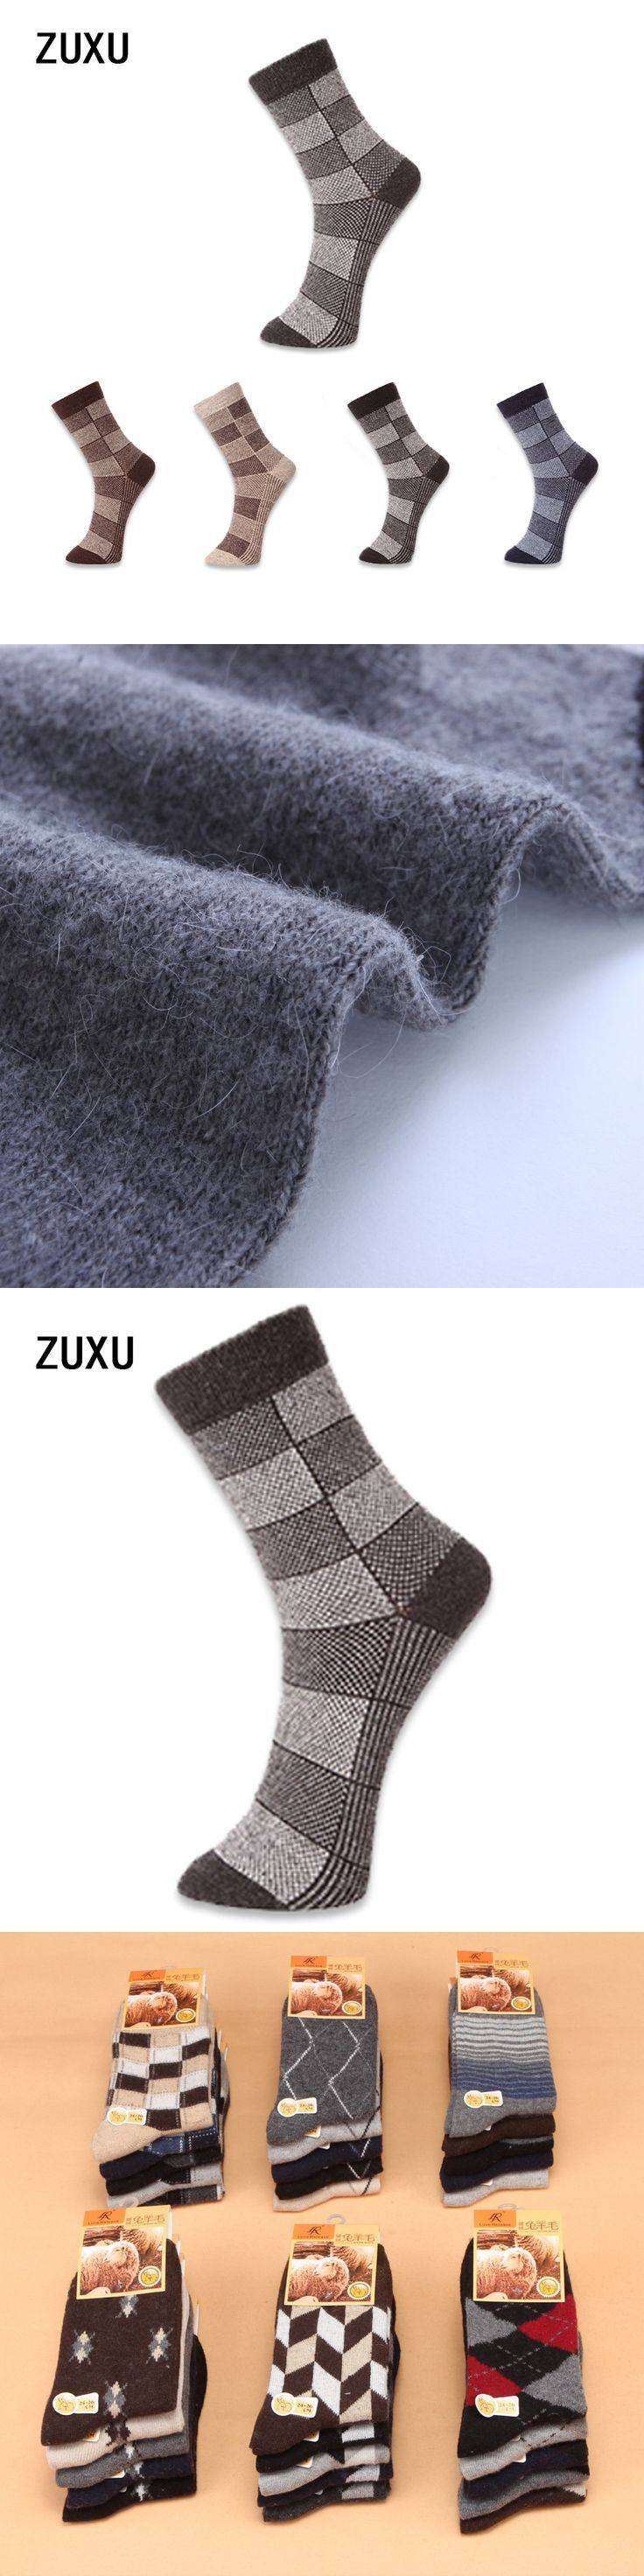 5 pairs/lot High Quality Men's Wool Socks Winter Cashmere Socks Winter Thickening Thermal Socks